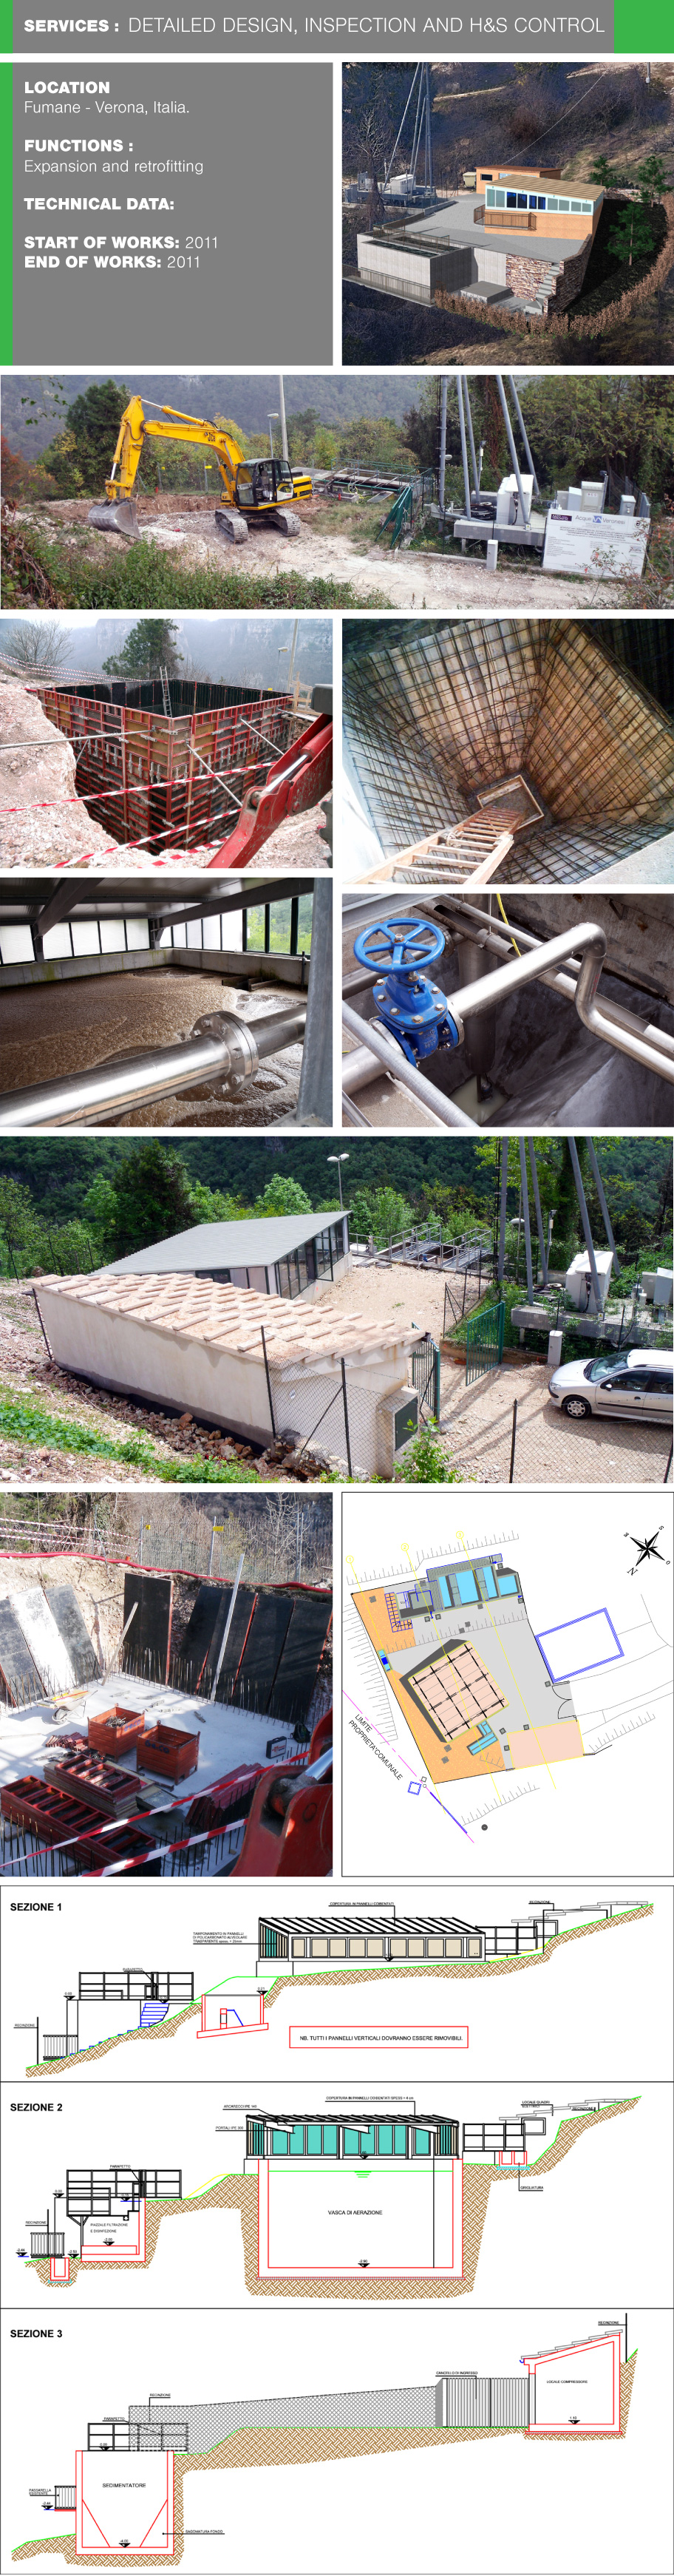 Wastewater_treatment_molina